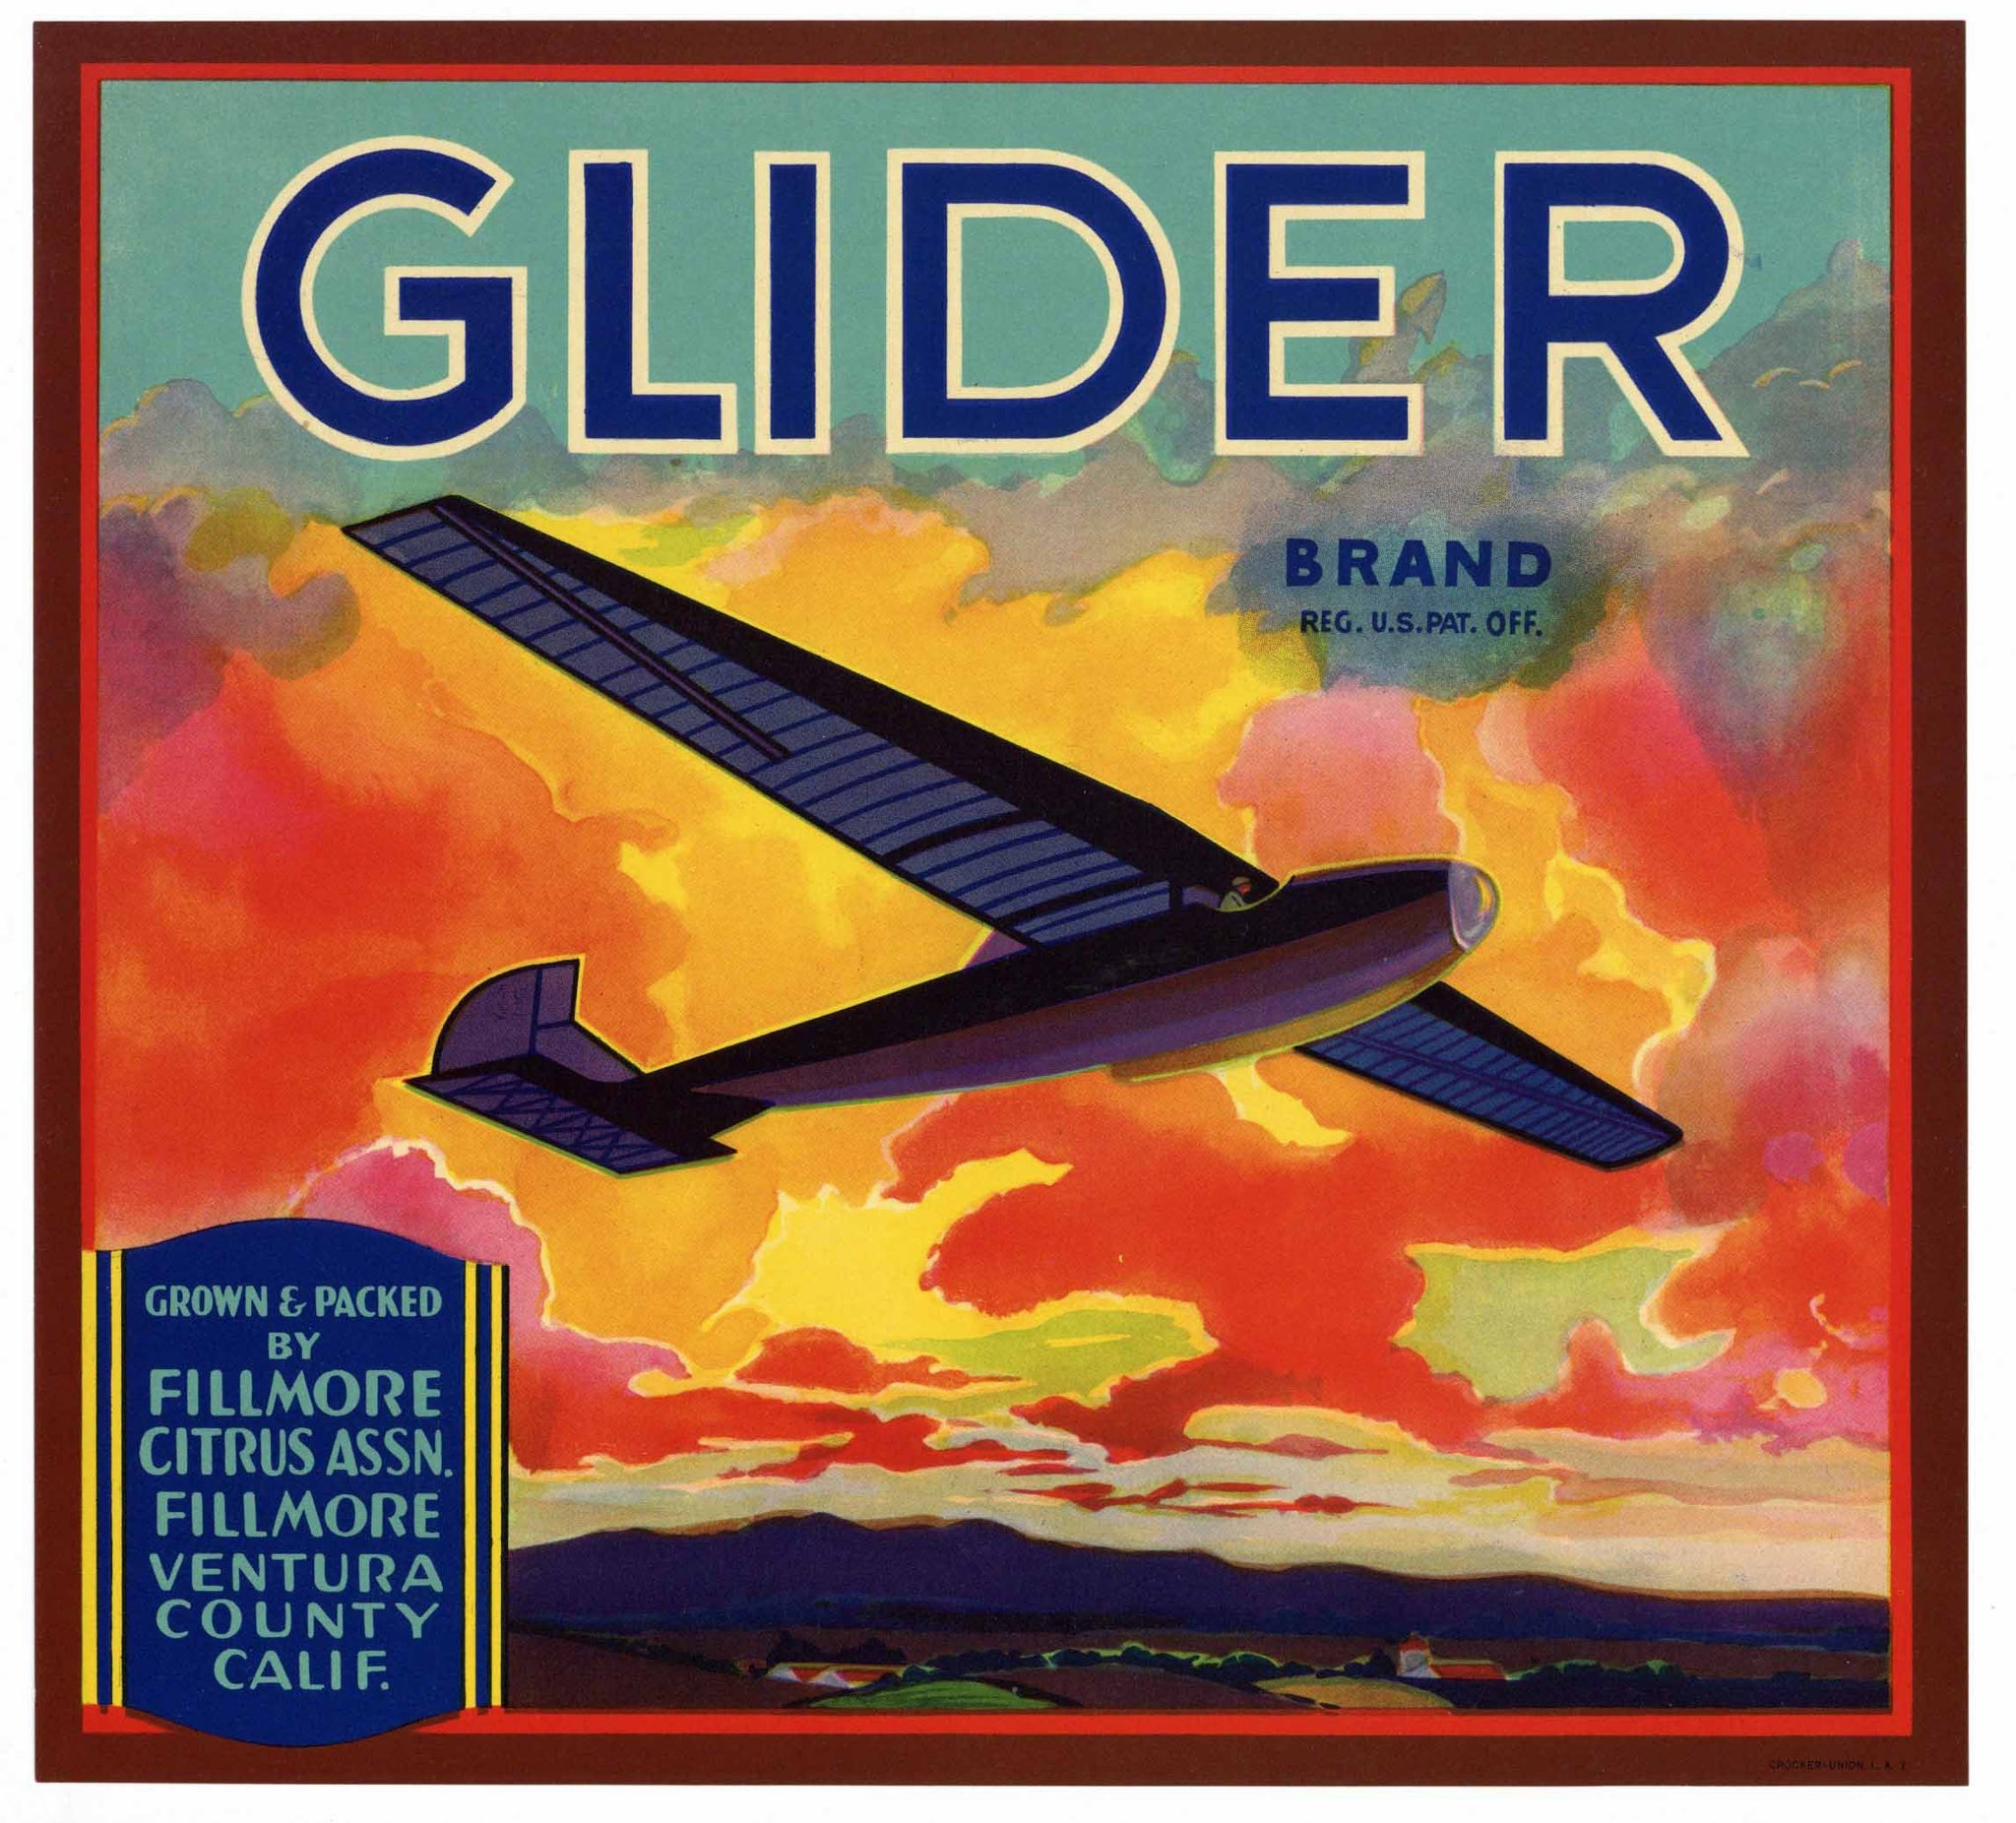 Glider Brand Vintage Fillmore Orange Crate Label